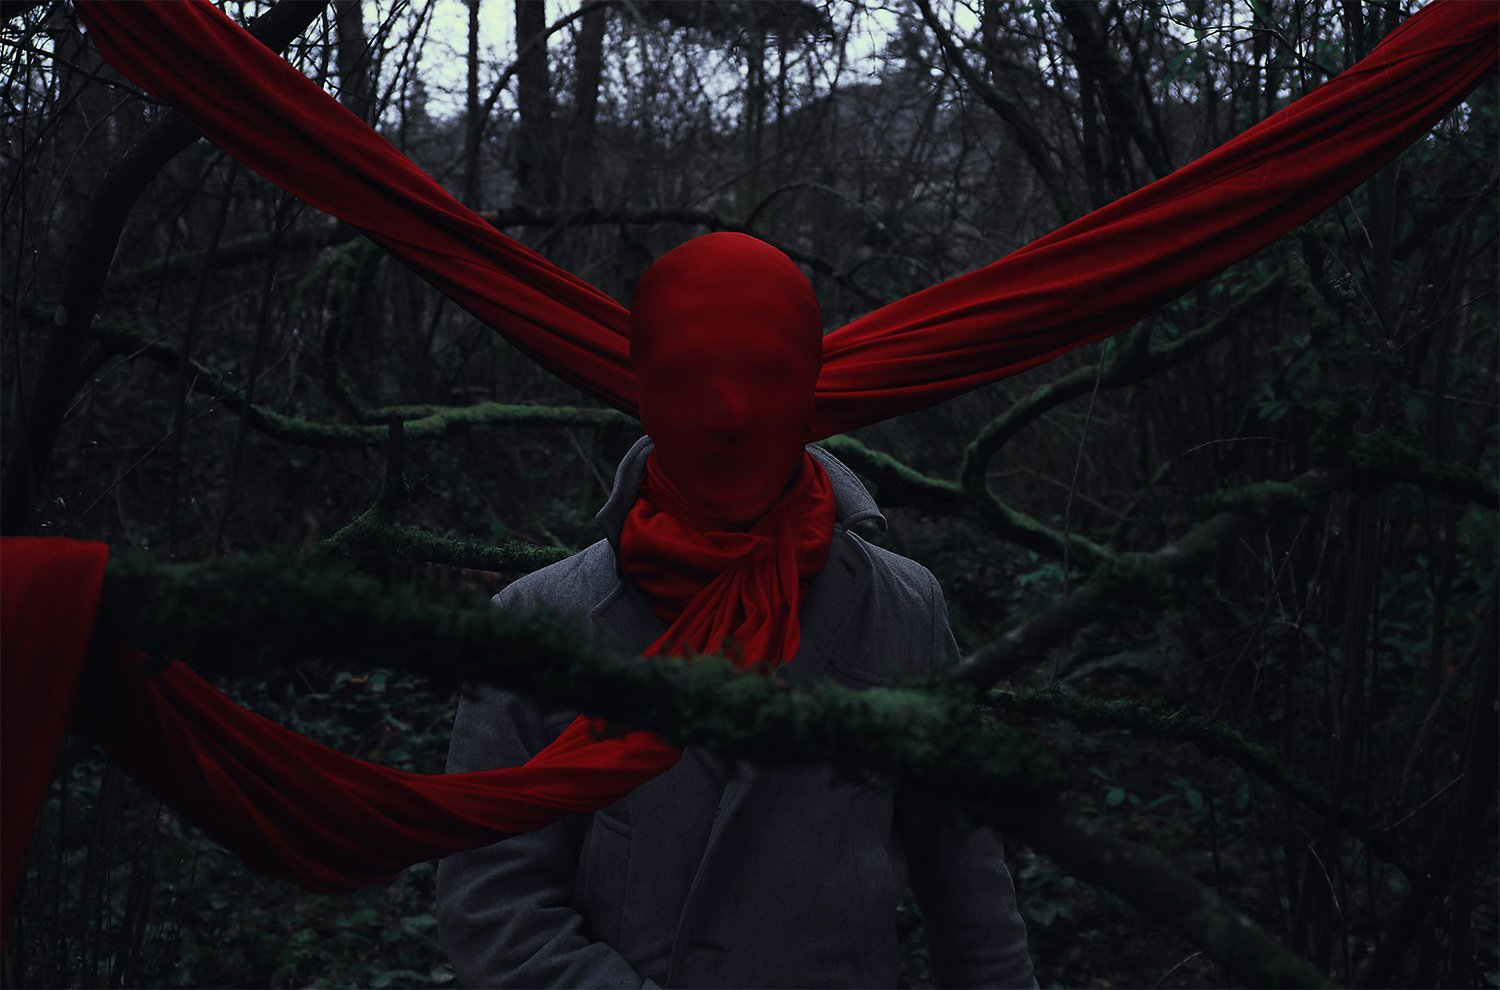 bound and tied in red sheets, dark photography